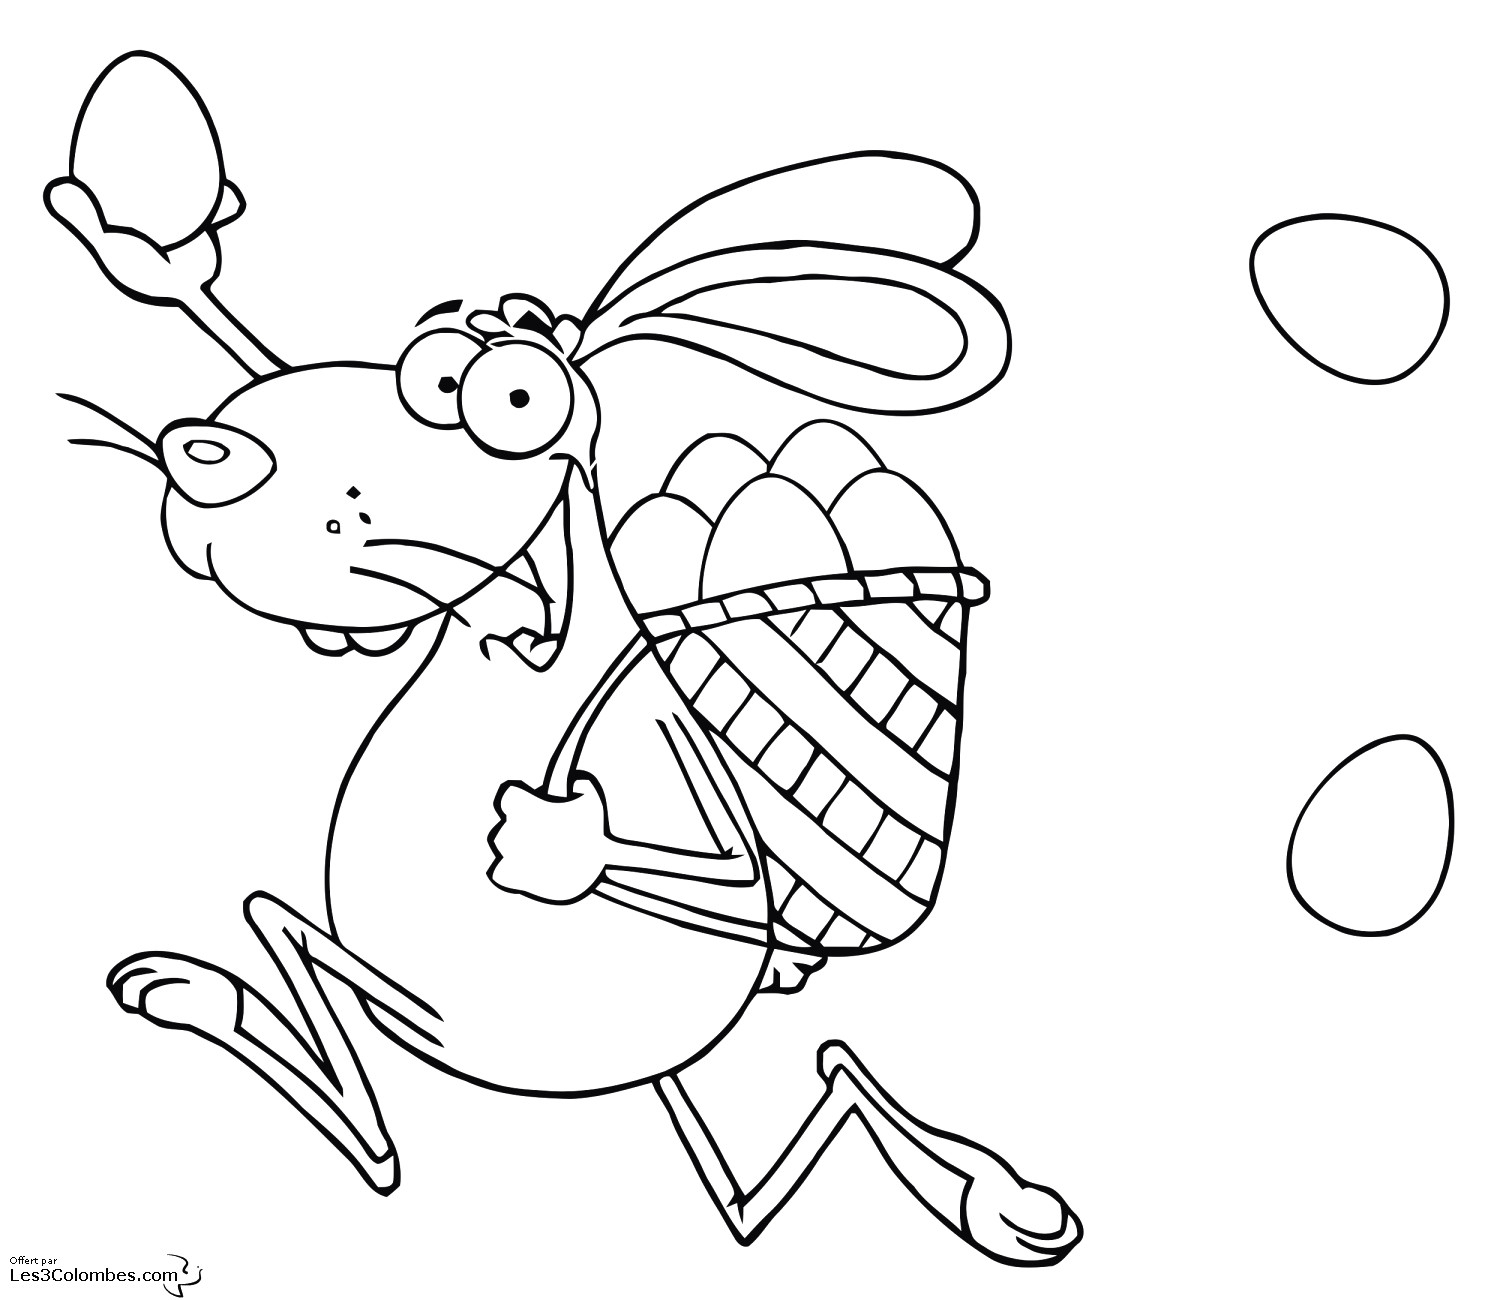 Dessin Lapin Simple Mexicaindessin Download Avec Dessin encequiconcerne Dessin Lapin Simple